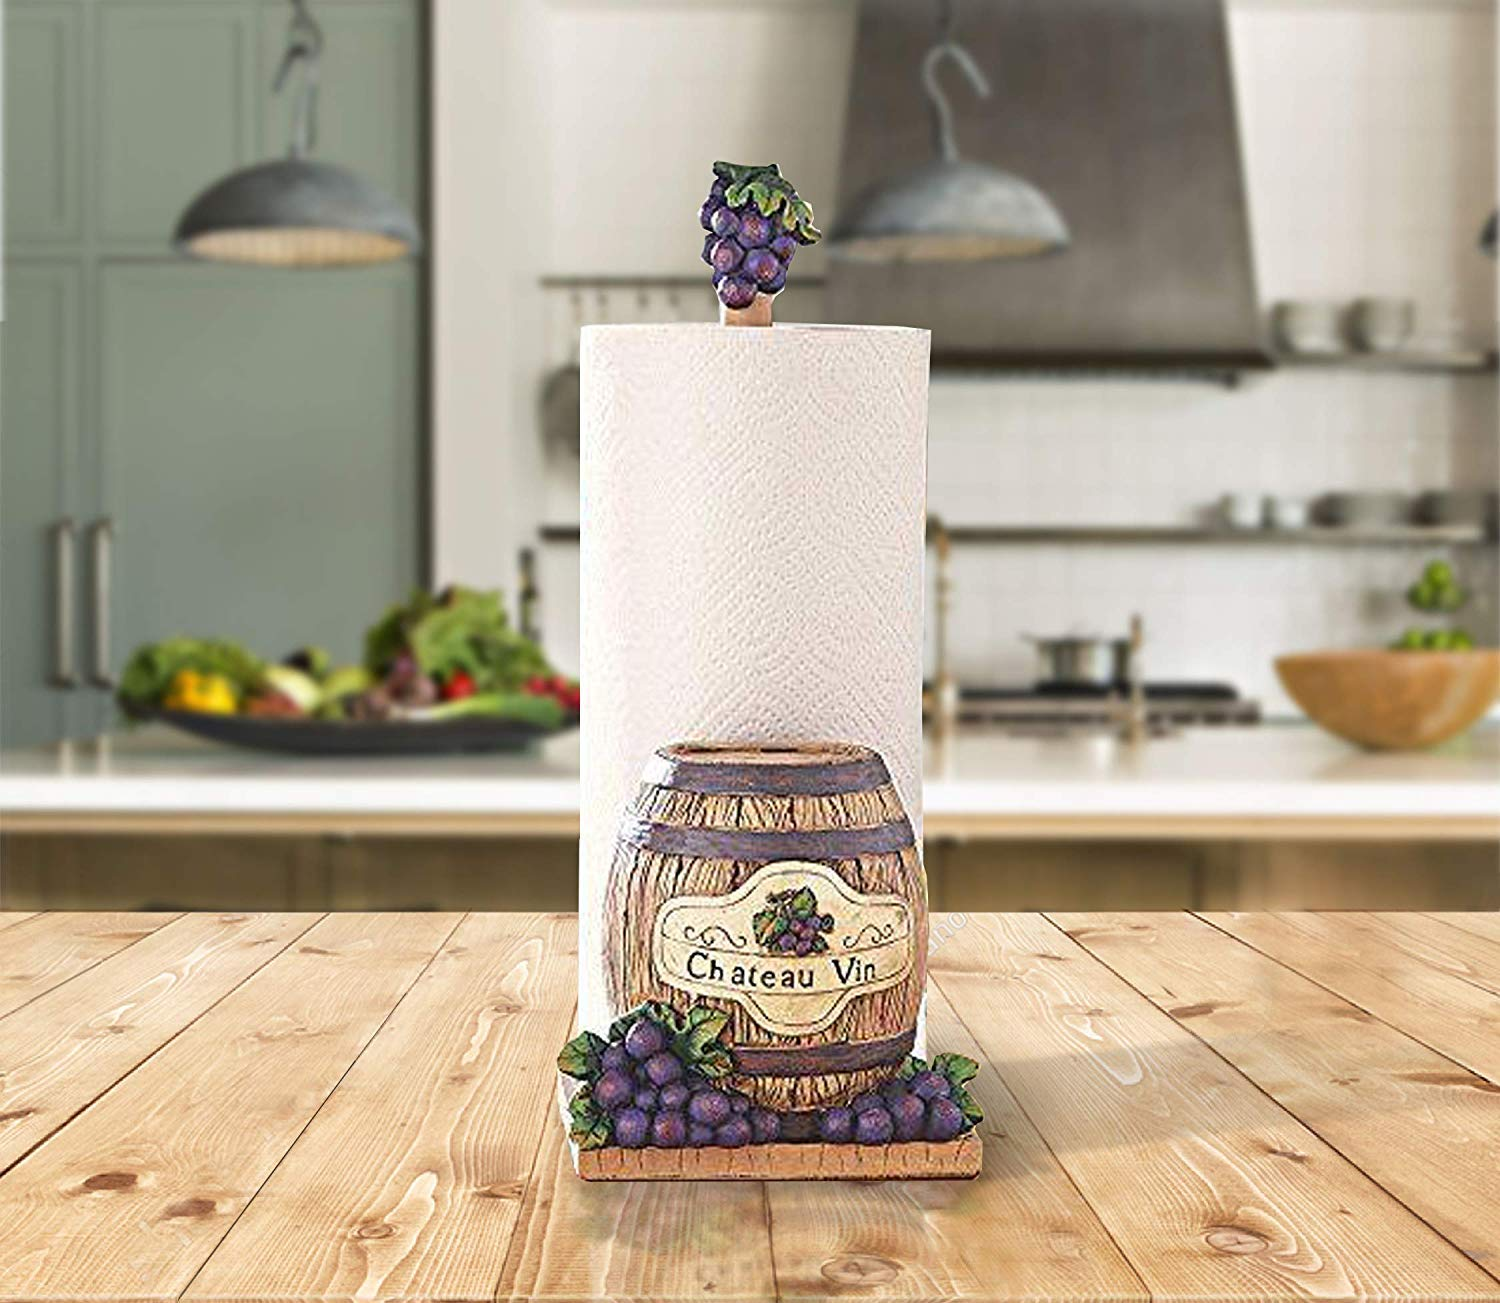 Decorate Your Kitchen With An Elegant Hand Painted Paper Towel Holder (Wine Theme With Barrel)